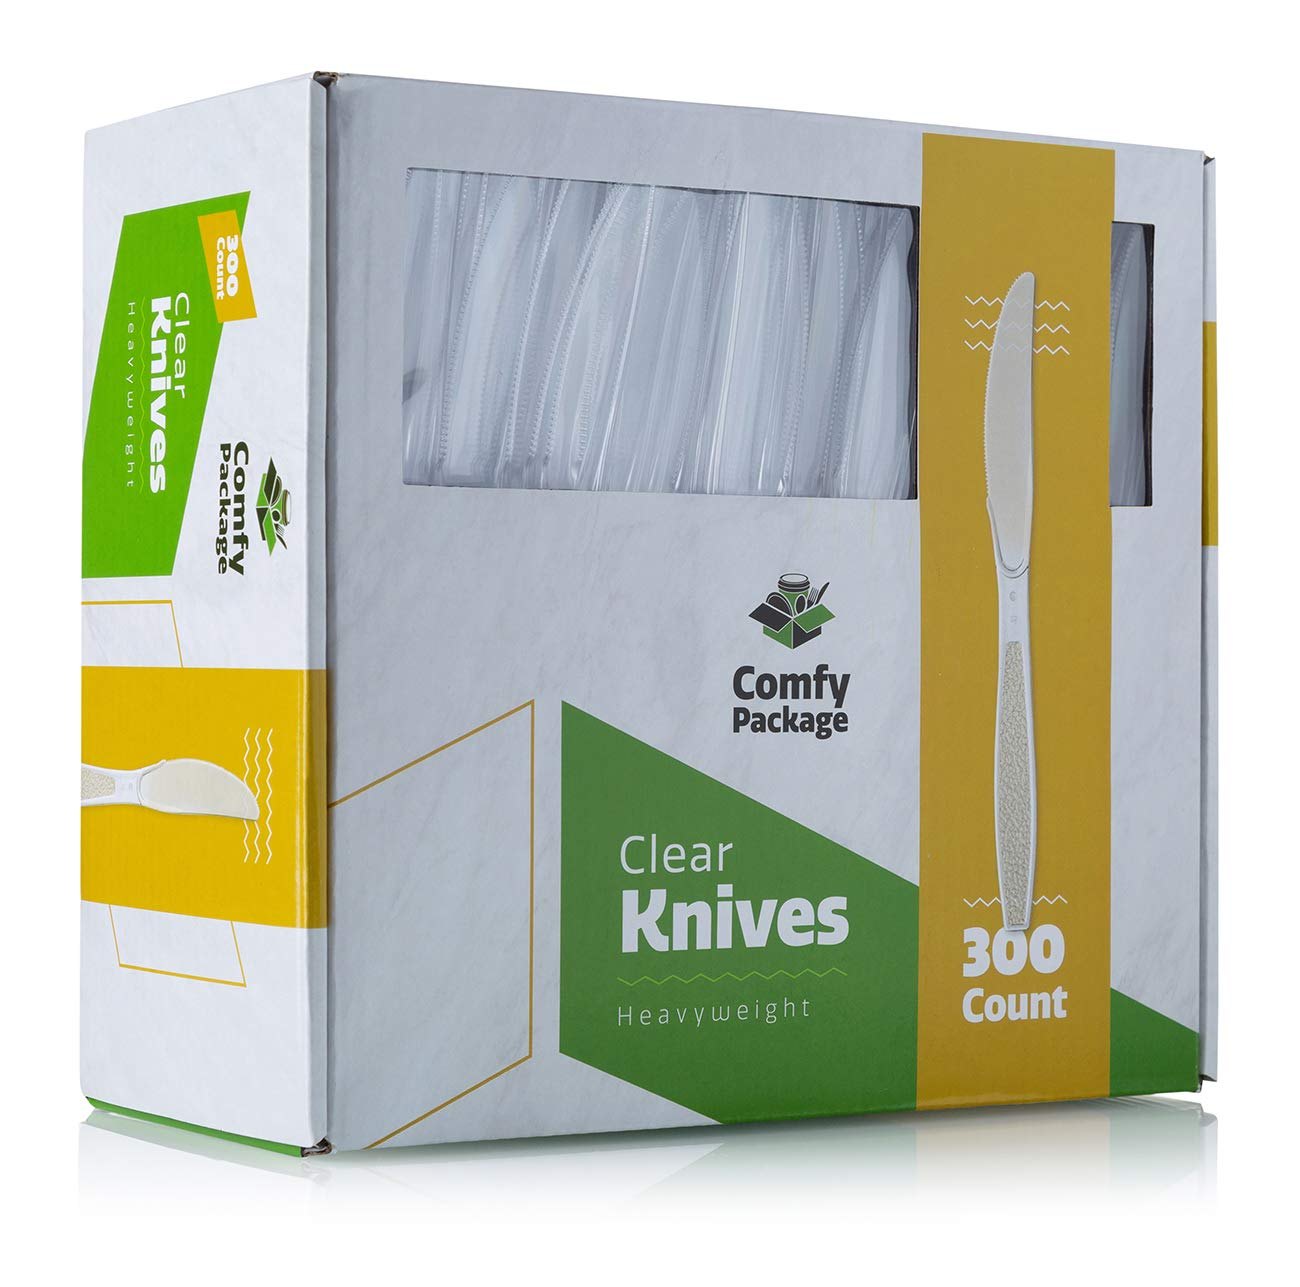 [300 Pack] Heavyweight Disposable Clear Plastic Knives by Comfy Package